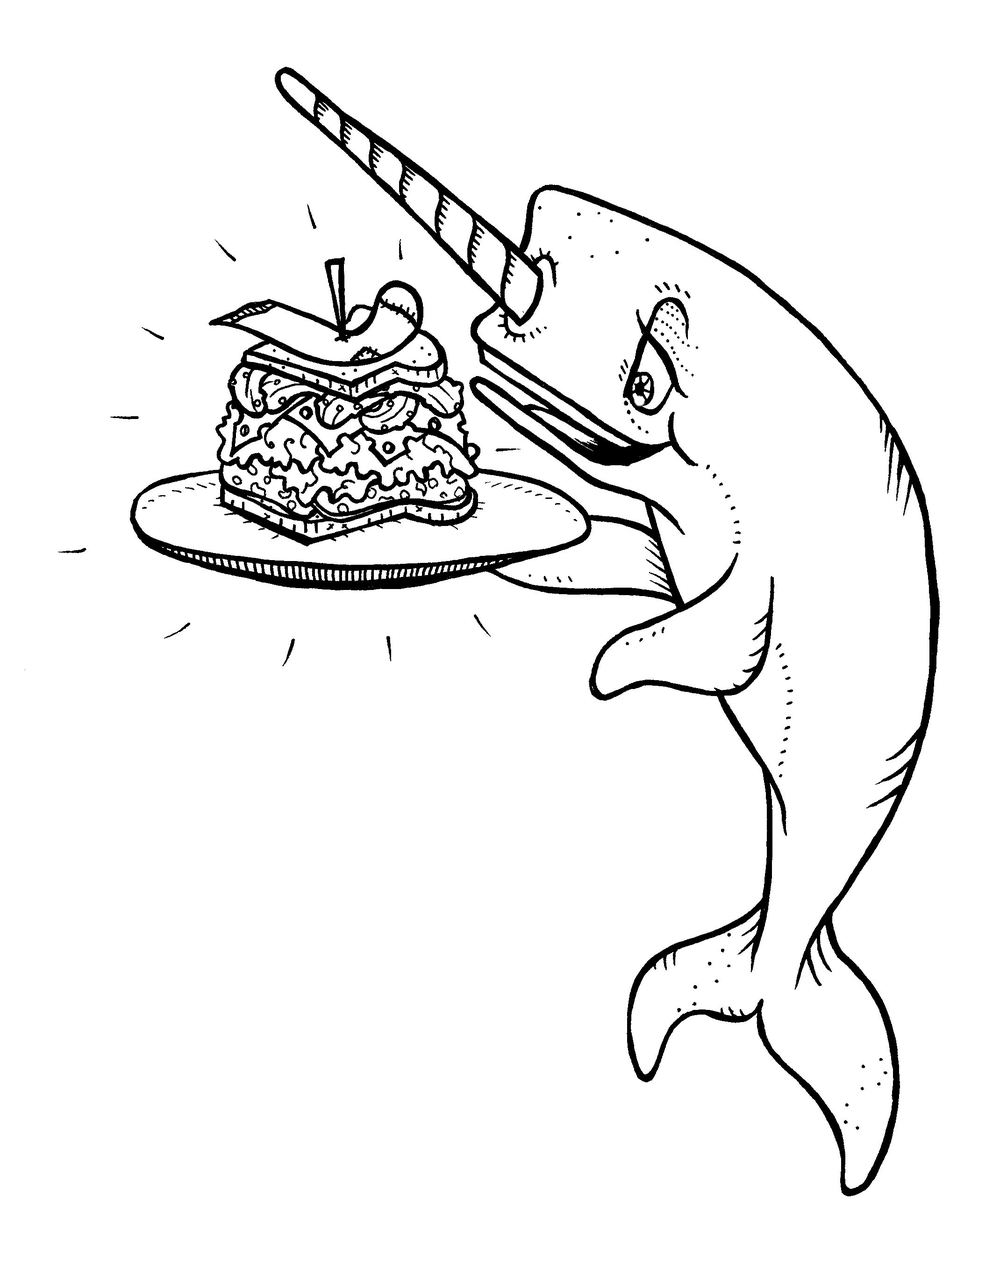 narwhal coloring page 2.jpg